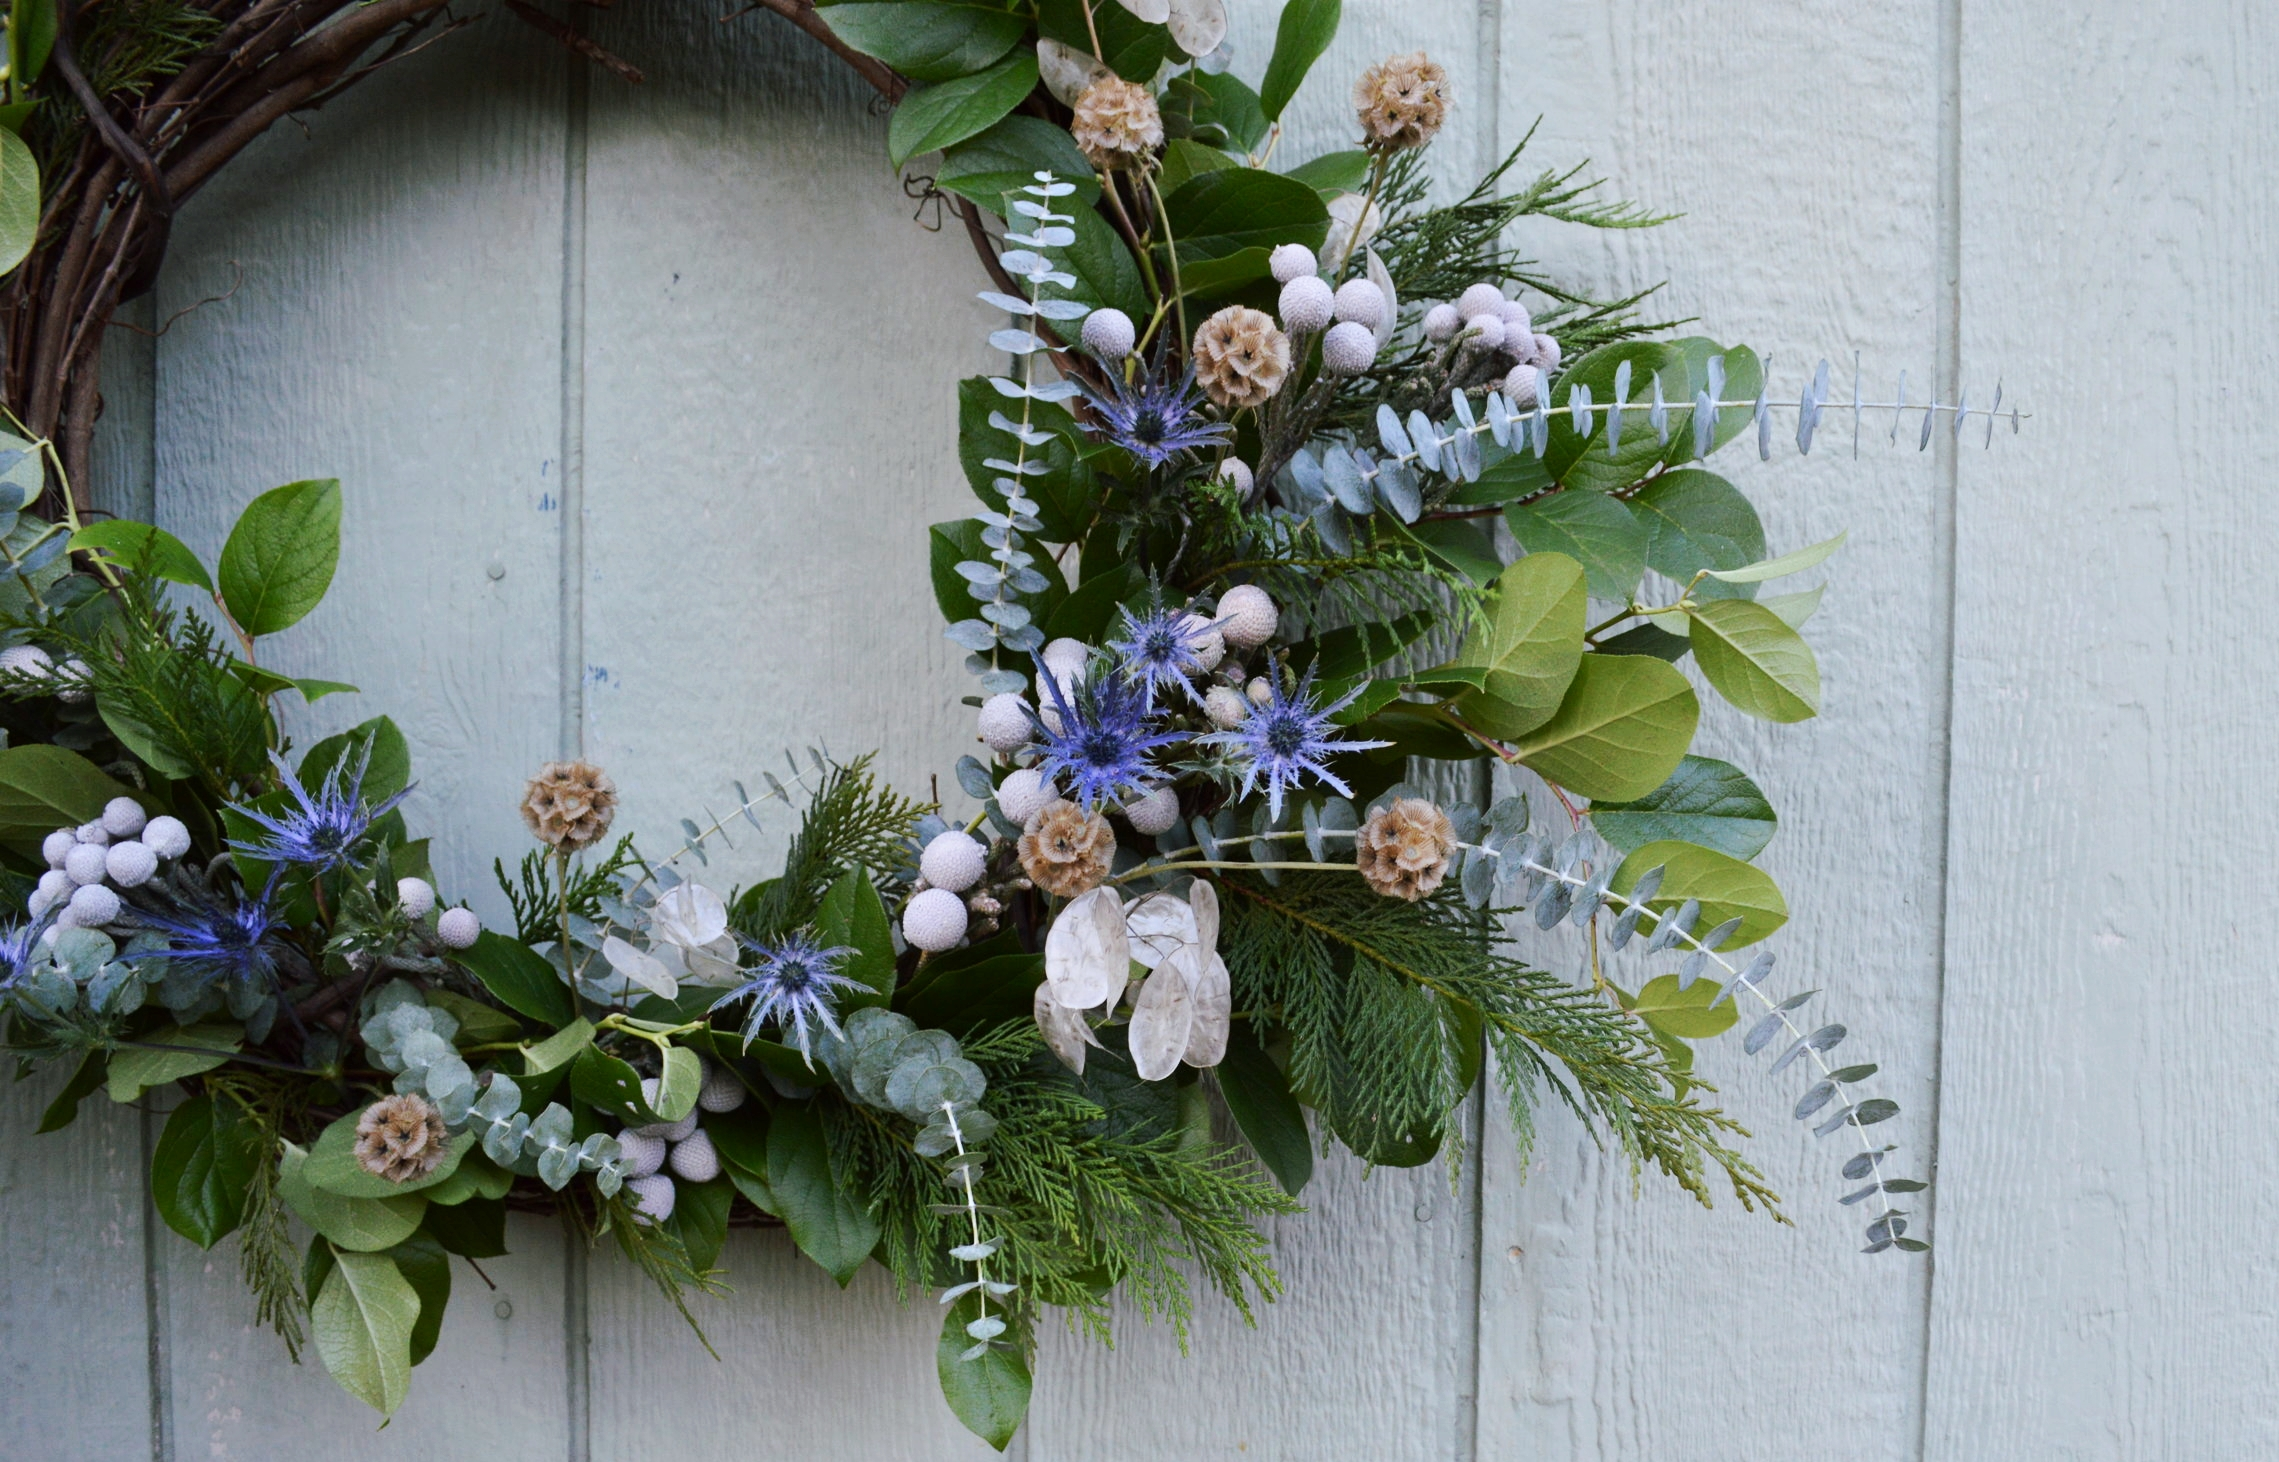 wreaths - We start with a grapevine wreath, add long lasting greenery, and then embellish from there. Wreaths for homes use dried floral and greenery elements, while wreaths for events can use fresh flowers.